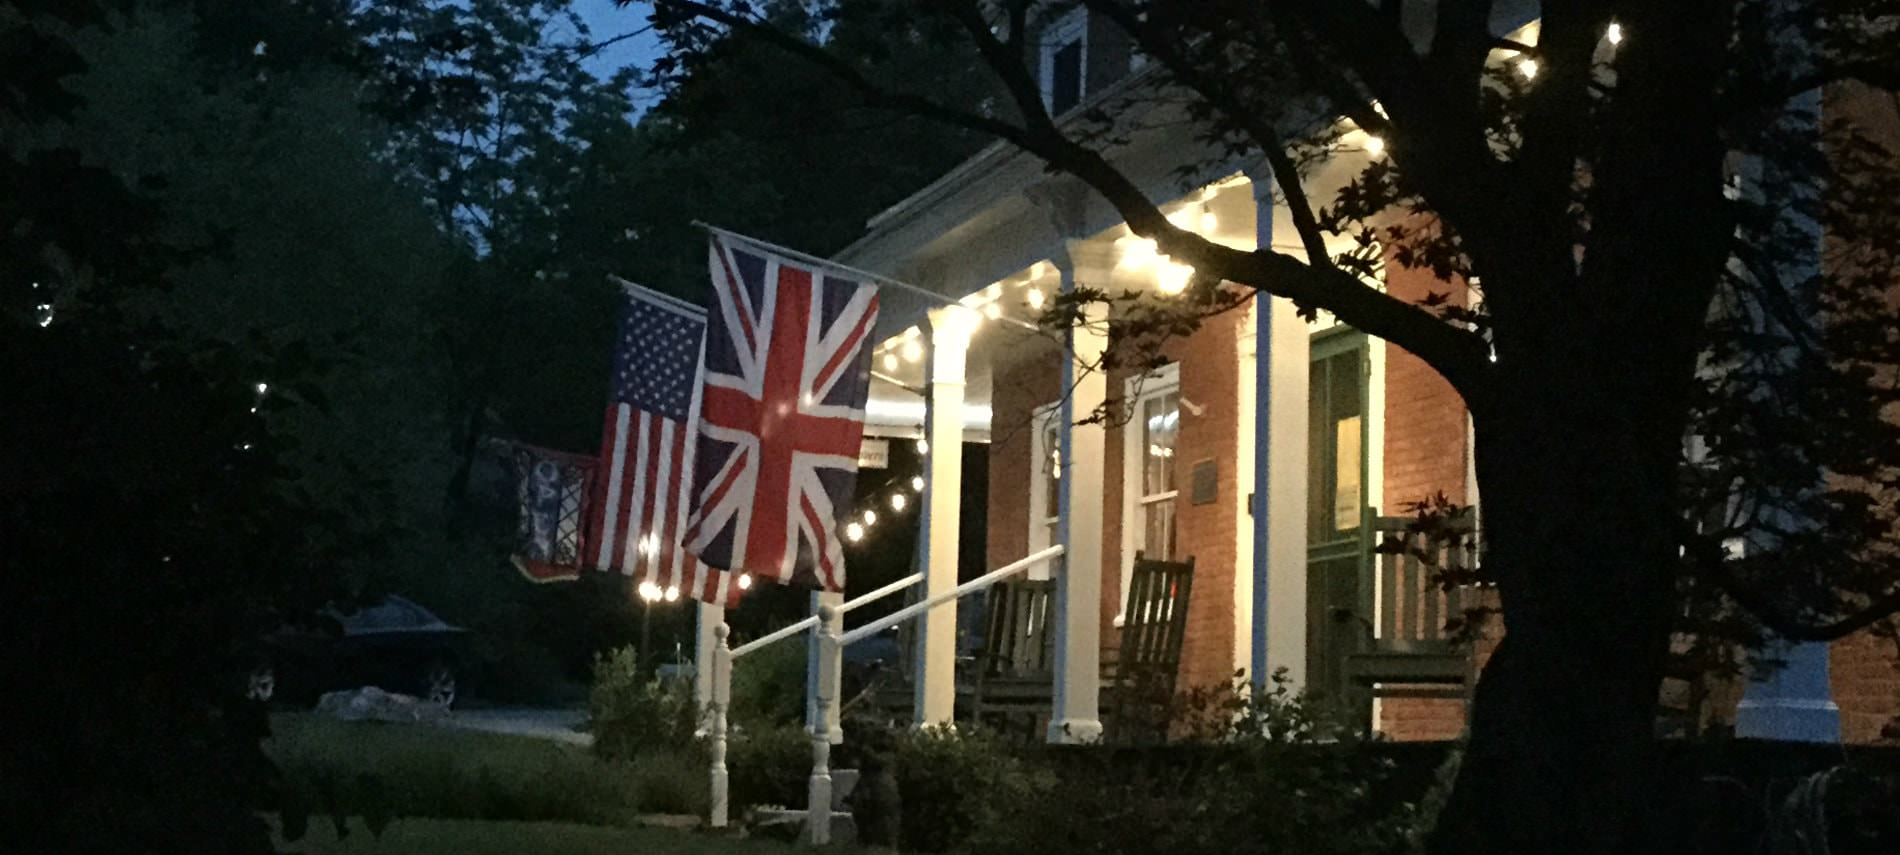 Exterior view of brick Birchwood Inn at dusk with porch lights on